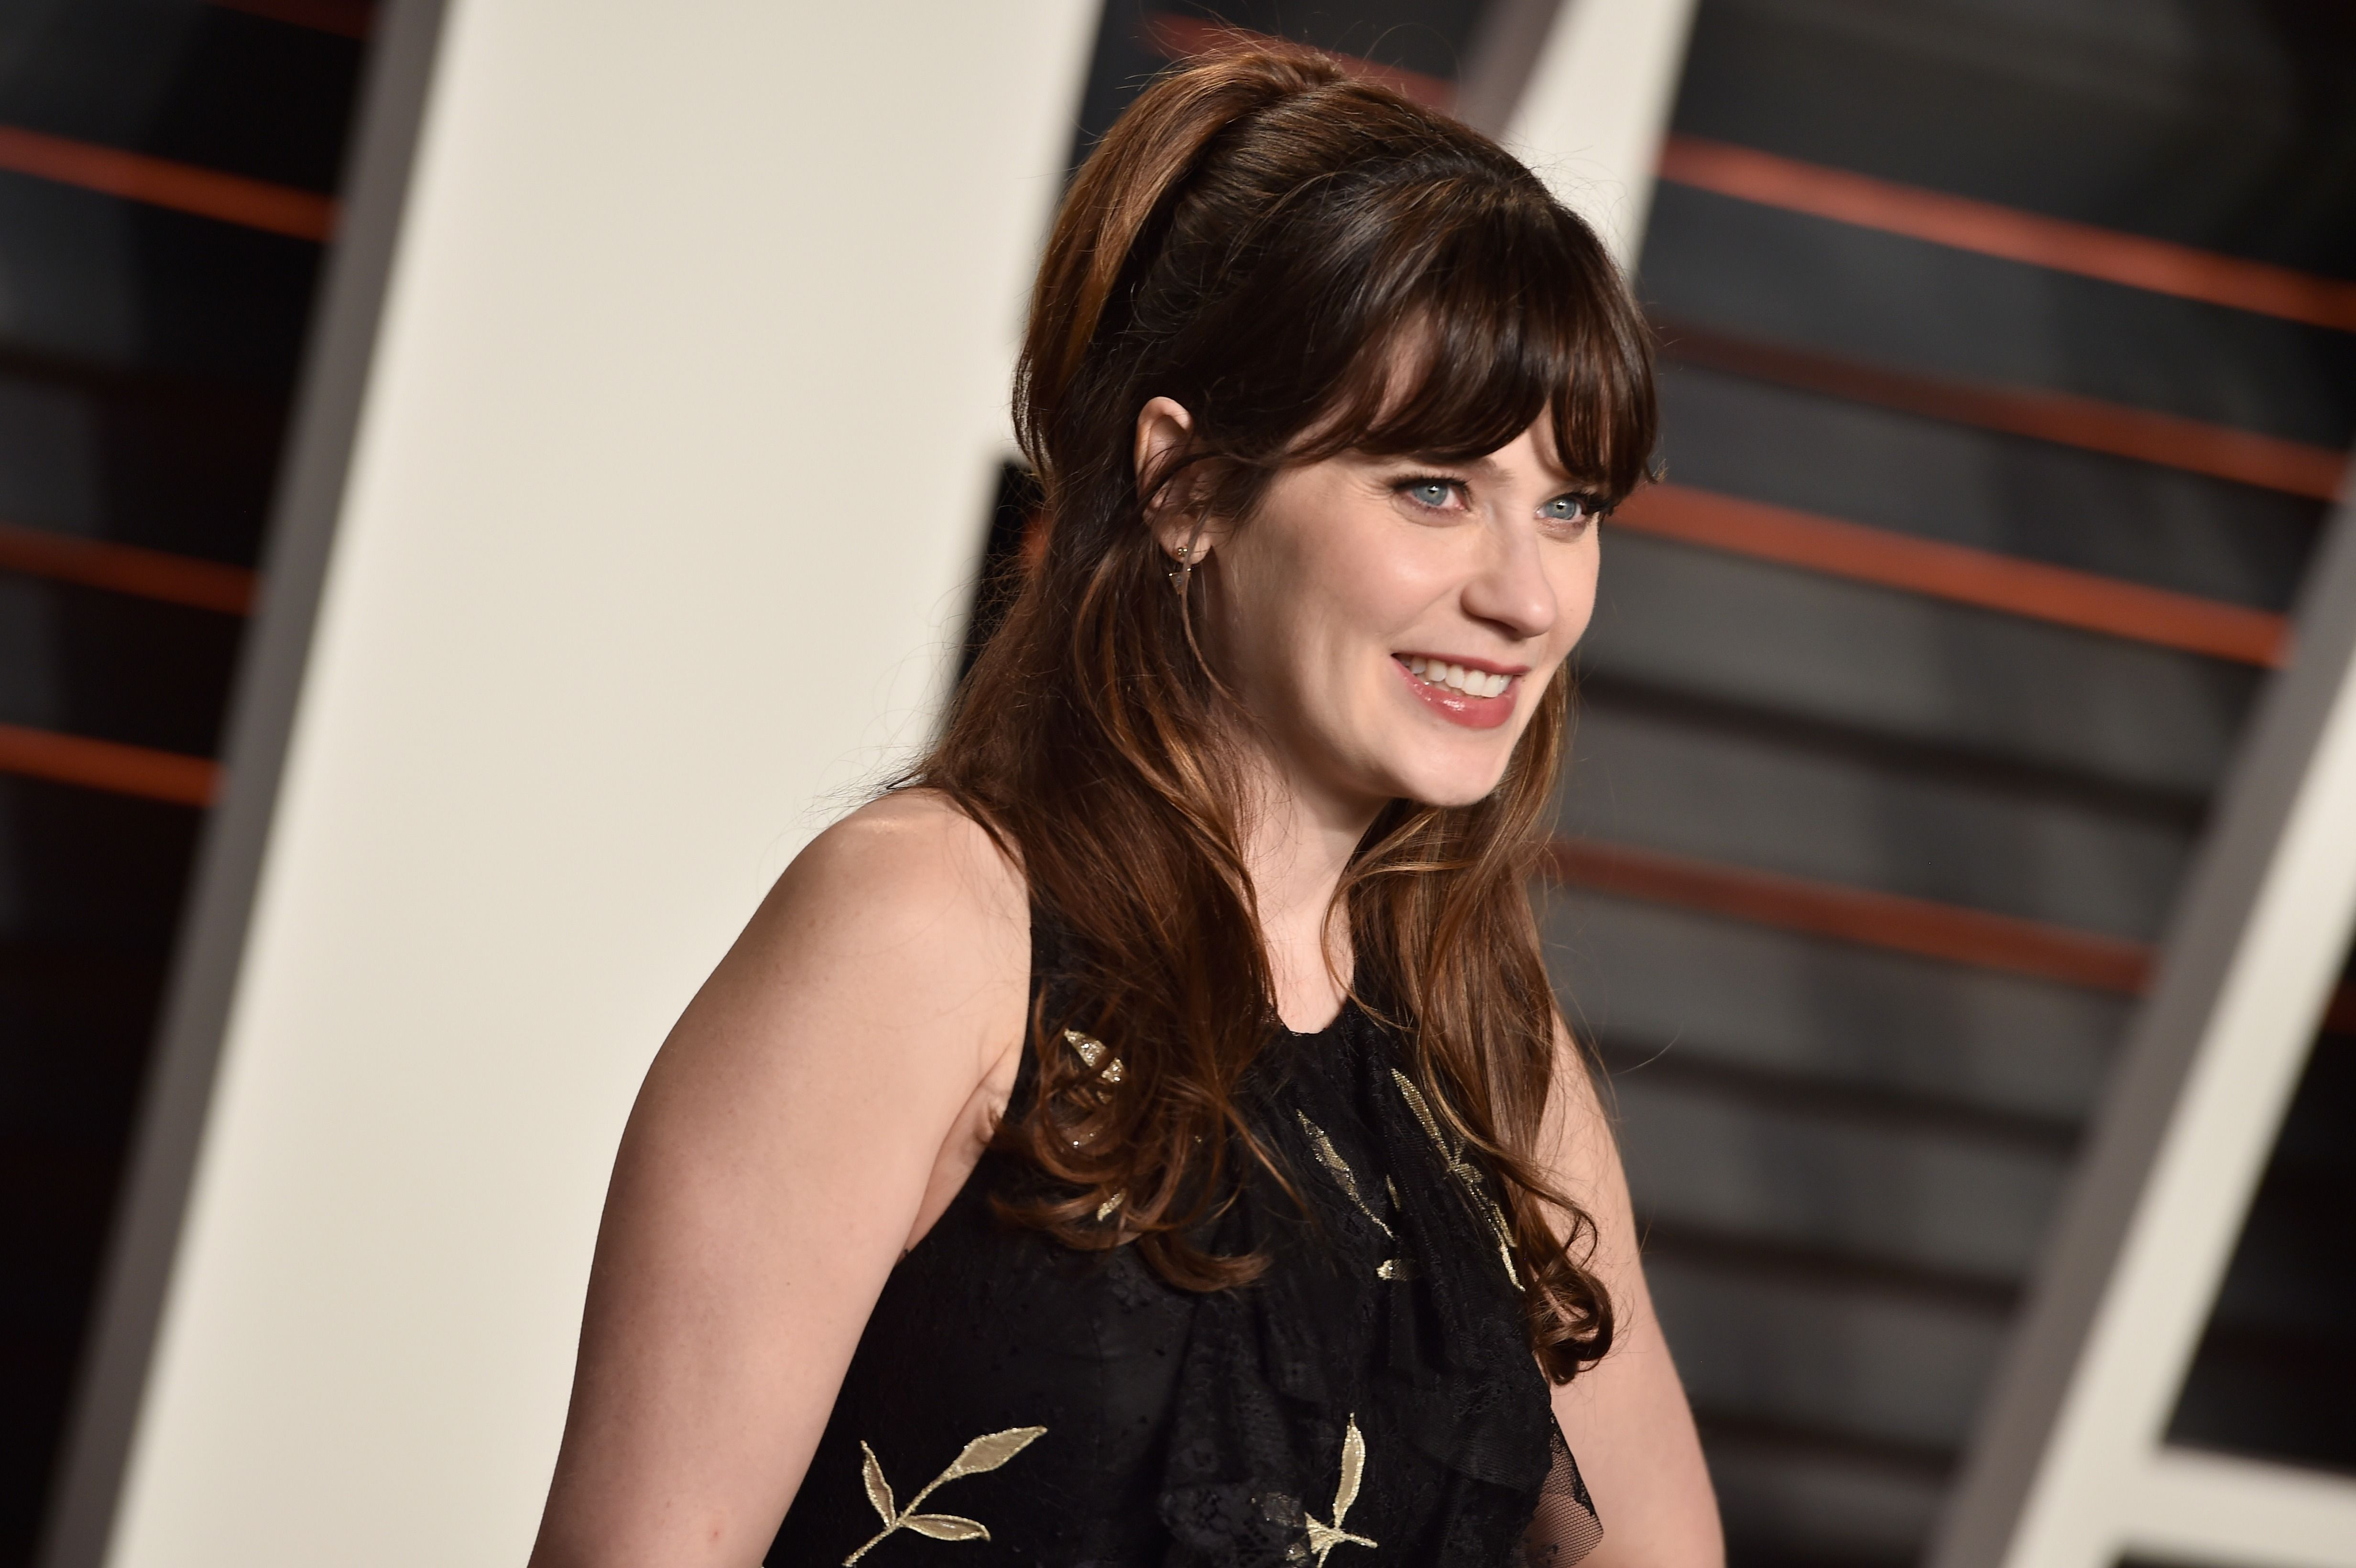 Discussion on this topic: Amanda Brugel, zooey-deschanel/